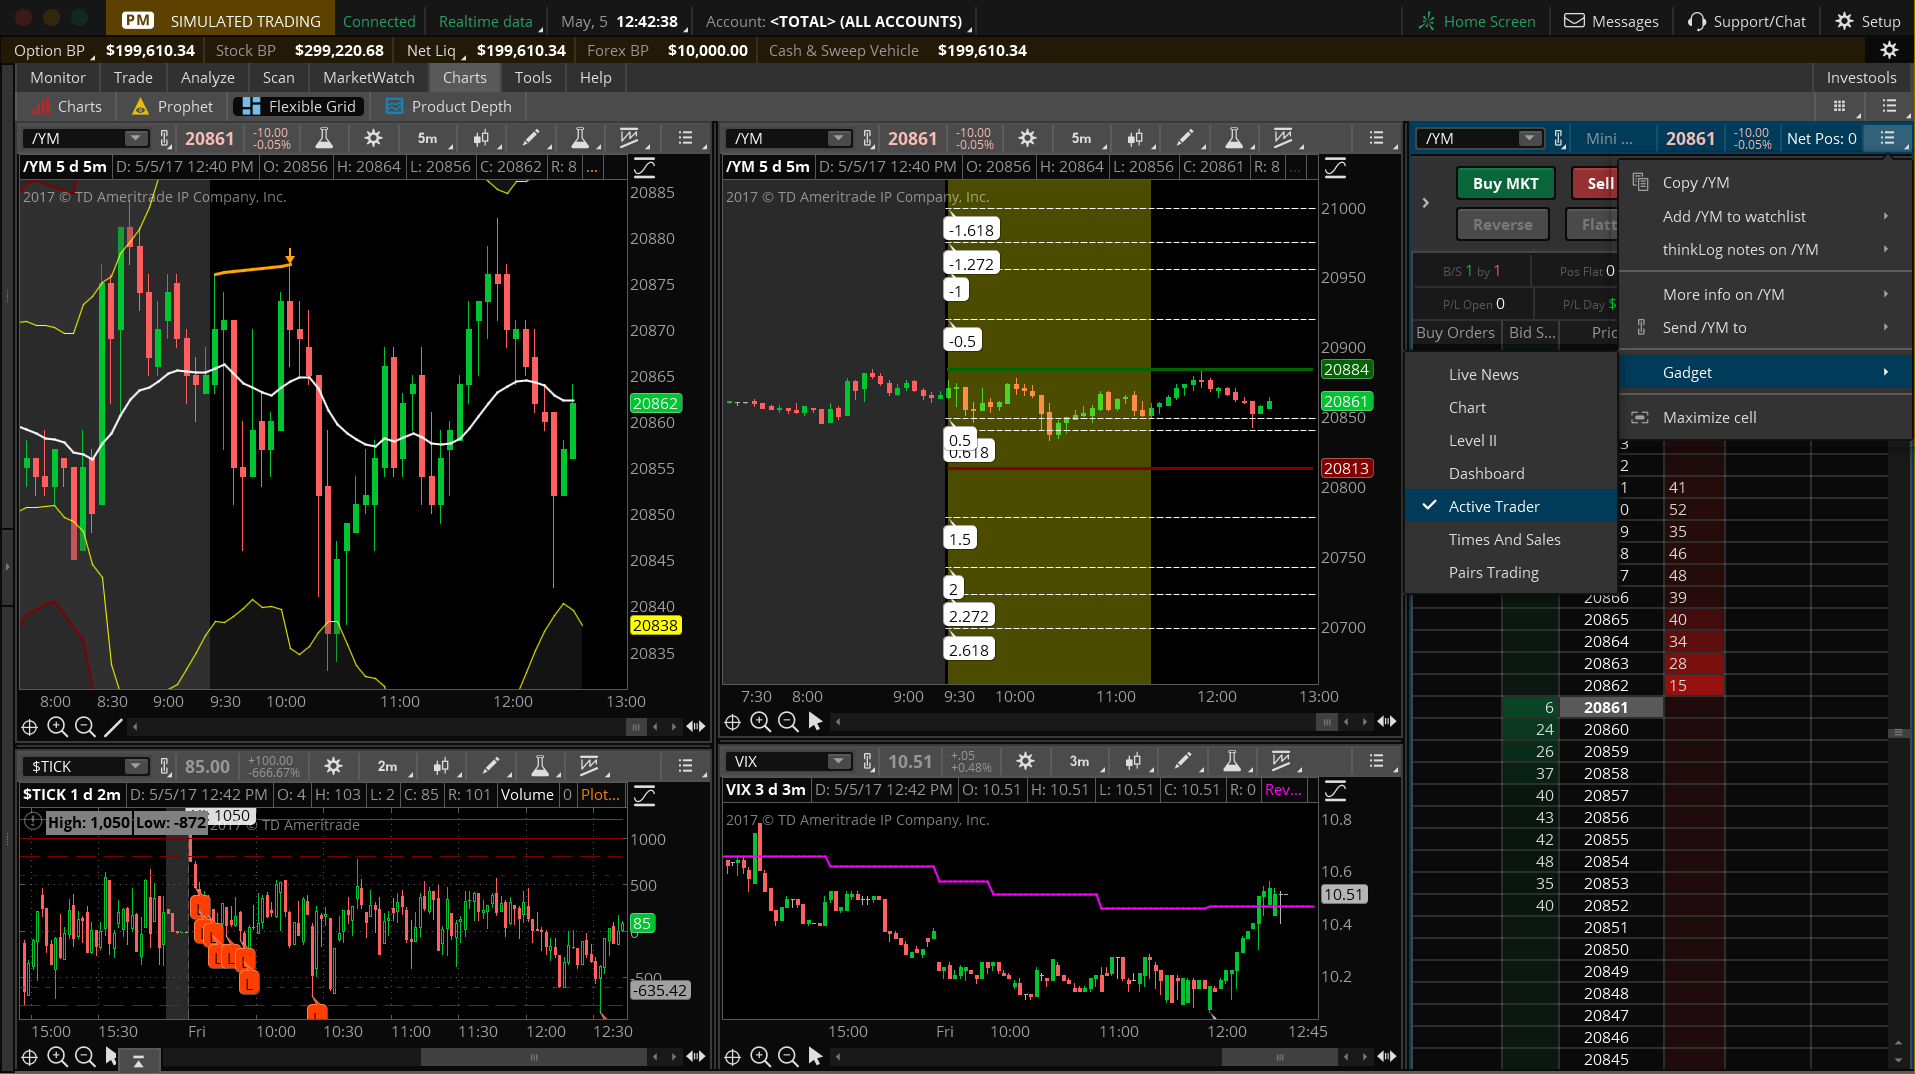 Is it possible to monitor P&L on the charts tab in Thinkorswim